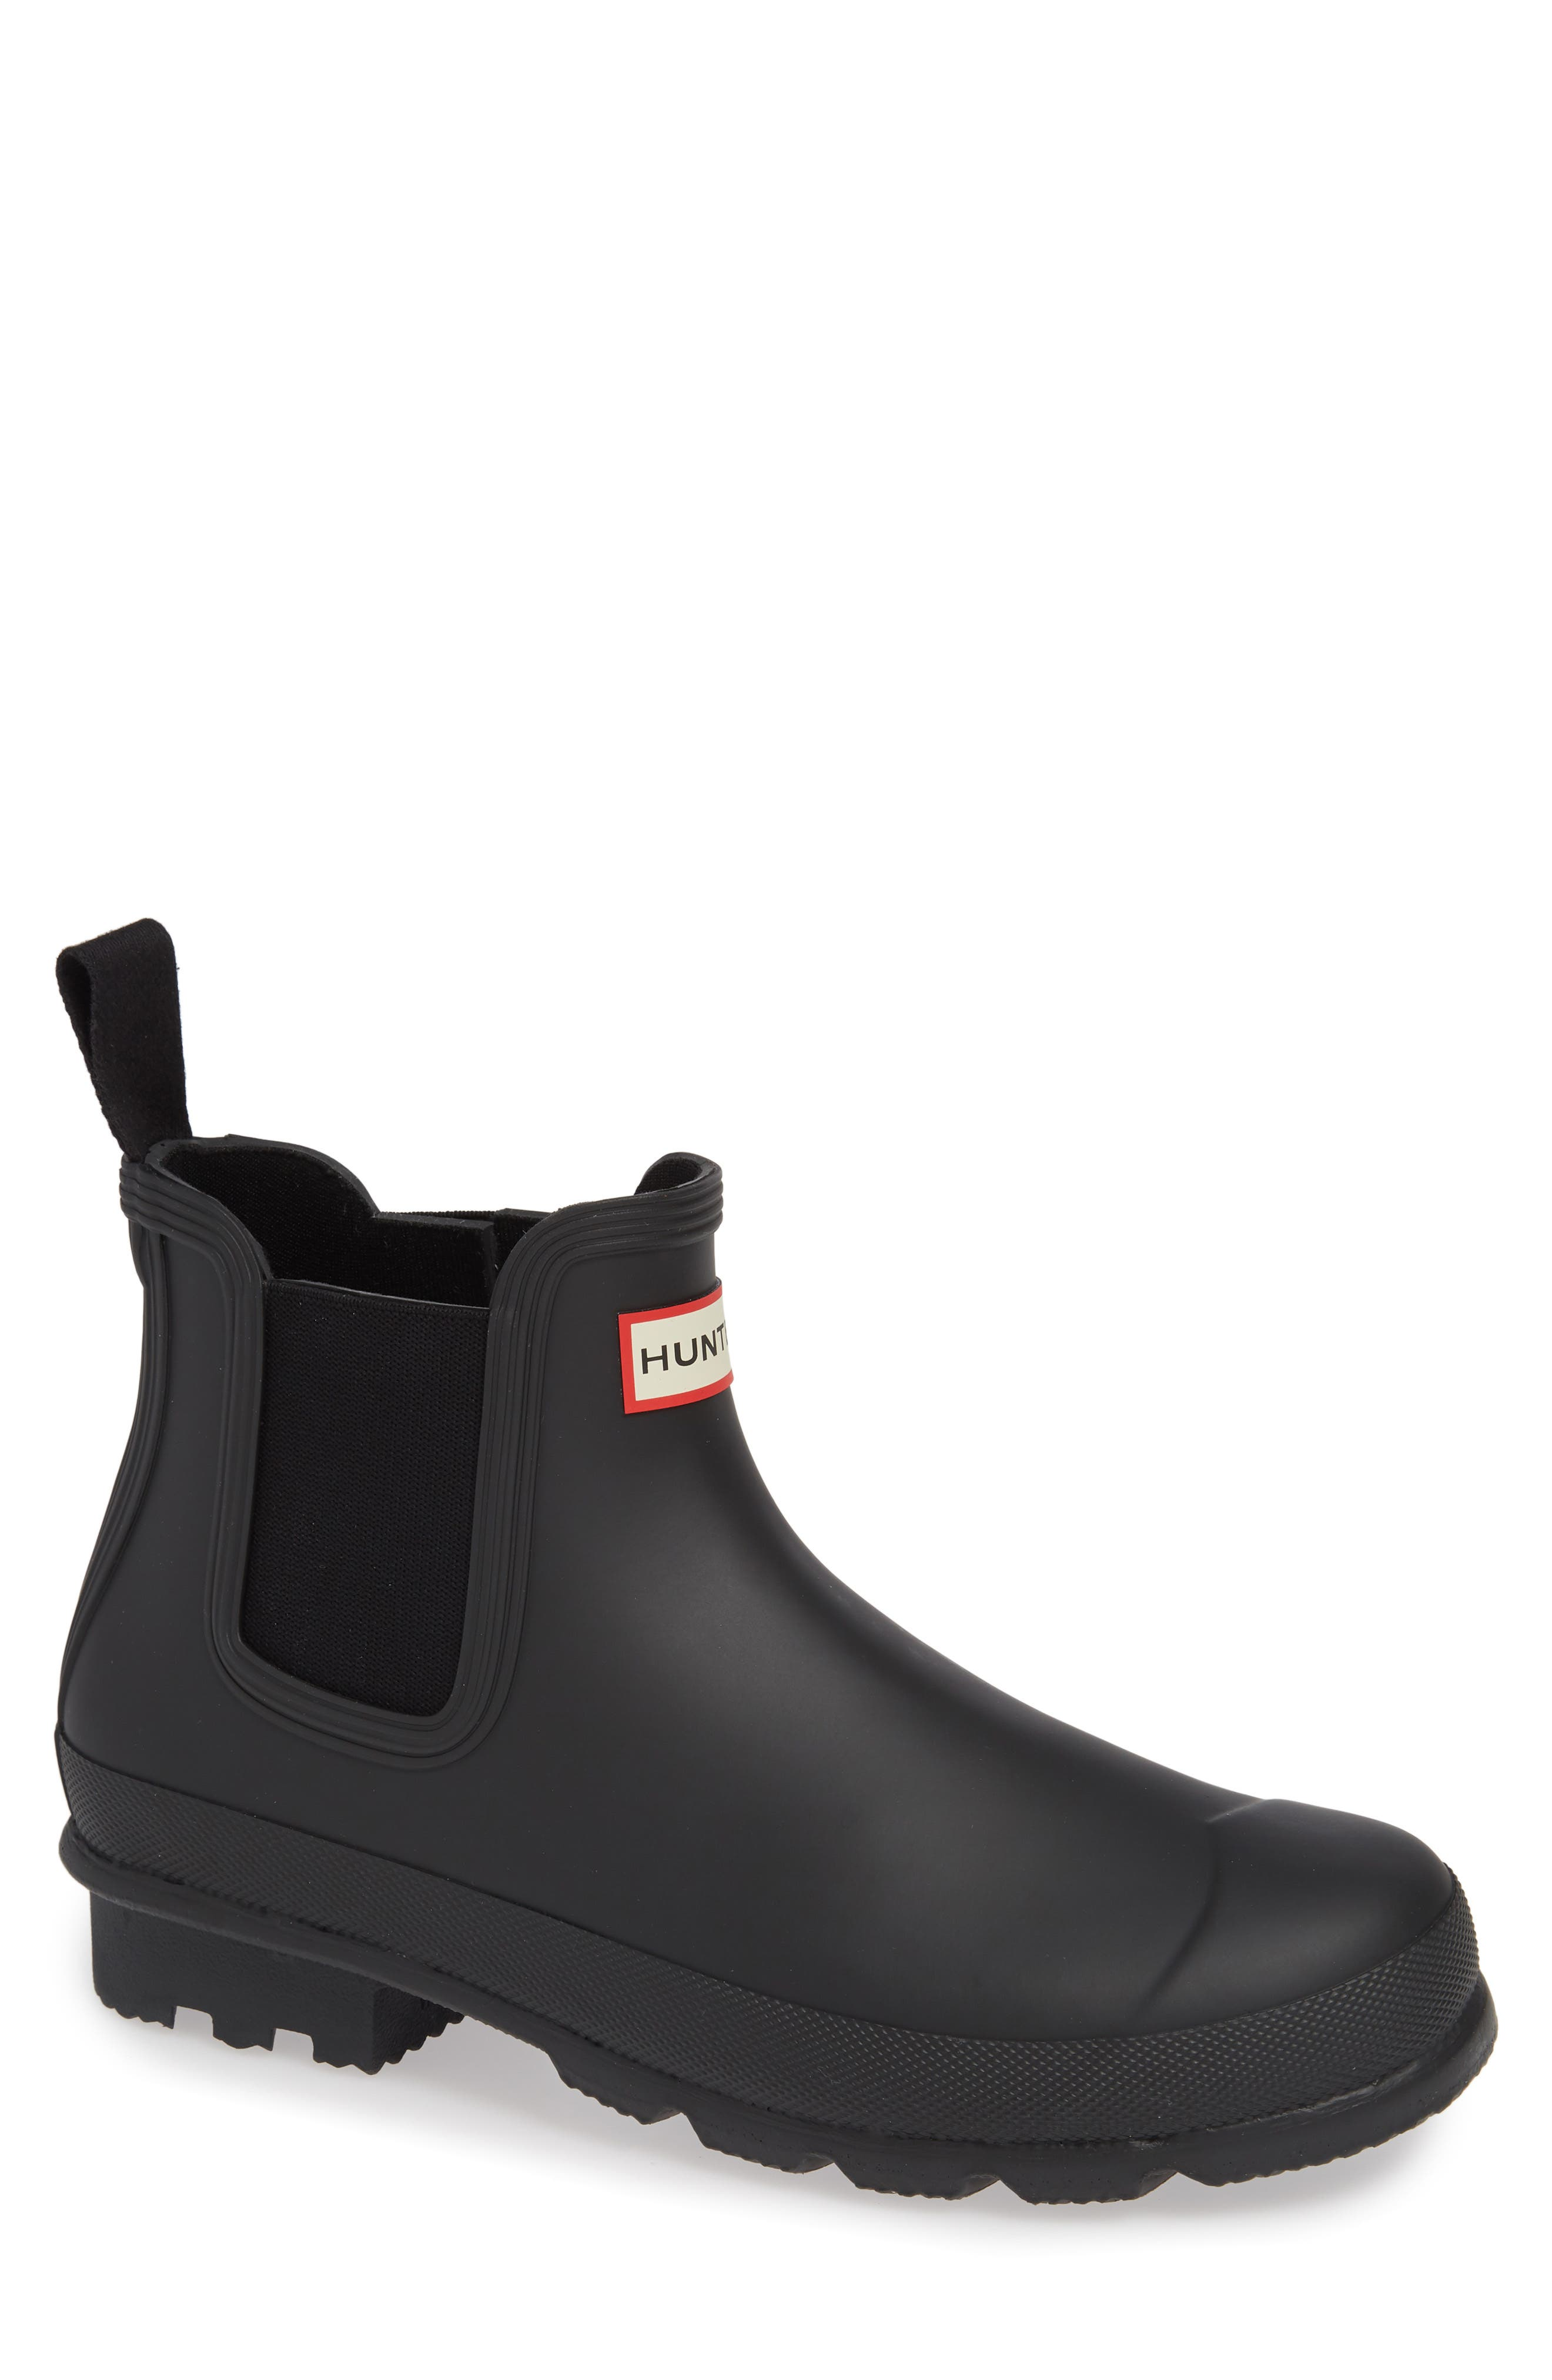 HUNTER,                             'Original' Waterproof Chelsea Rain Boot,                             Main thumbnail 1, color,                             002